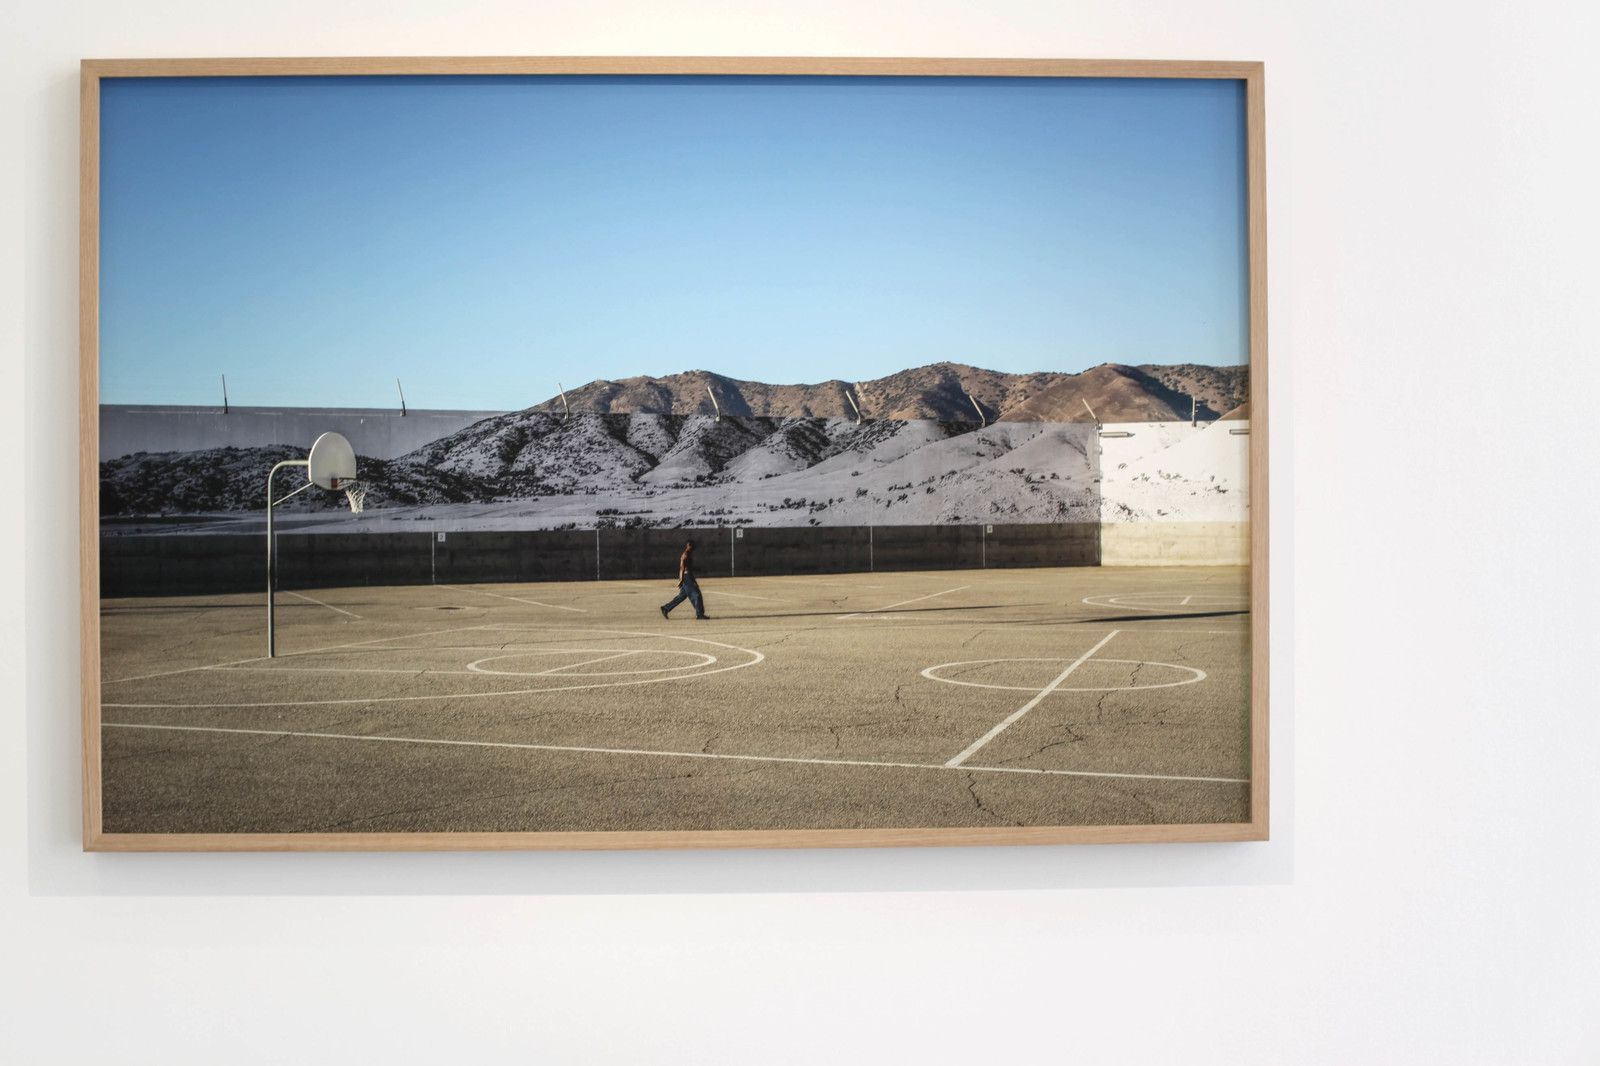 """Tehachapi, Mountain, February 6, 2020, 5.29p.m., U.S.A."", 2020 de JR - Courtesy Galerie Perrotin © Photo Éric Simon"